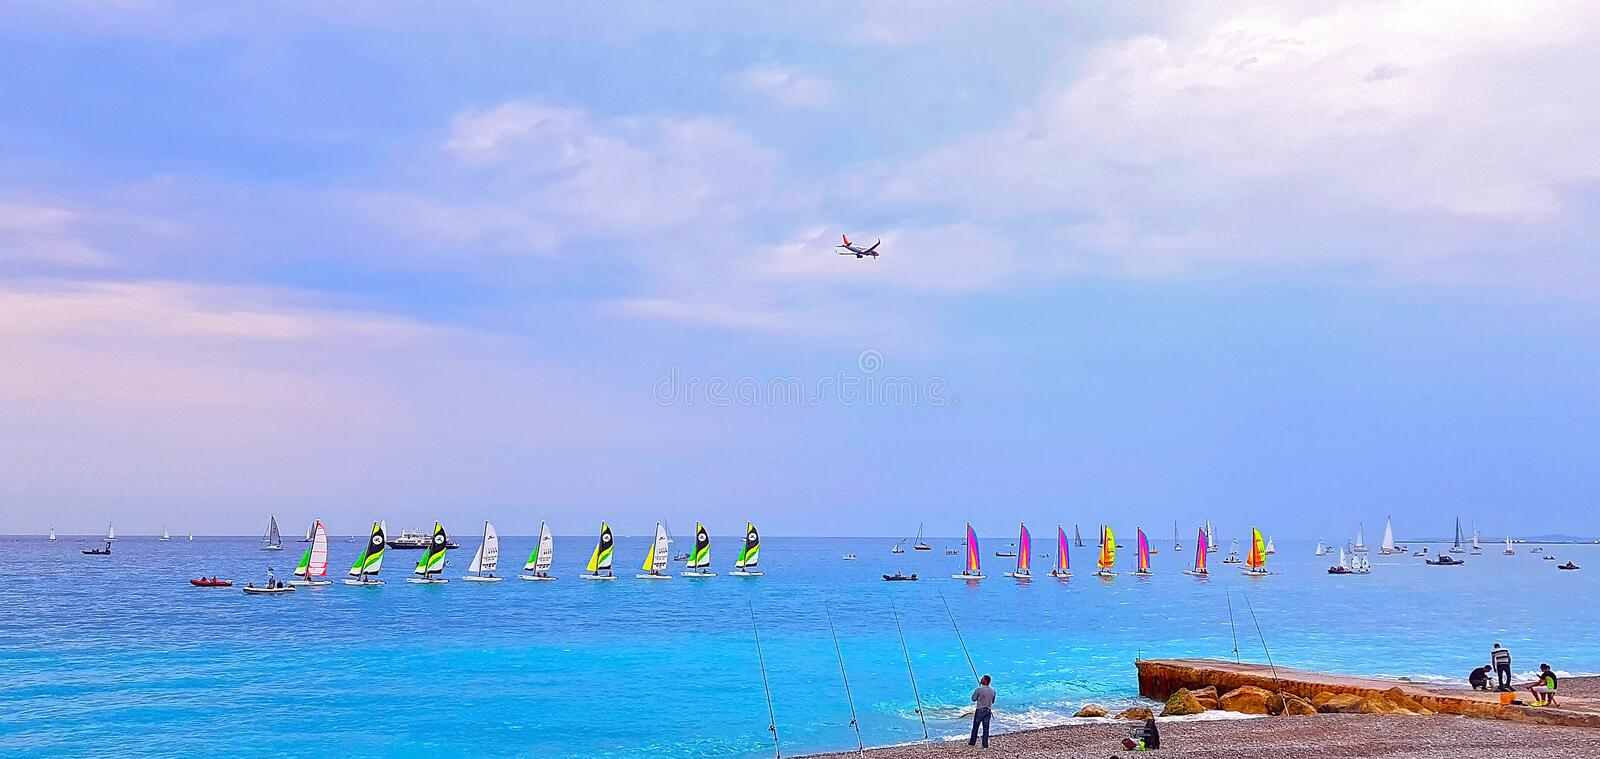 NICE, FRANCE - MAY 2018: Beach at sunset, colorful sailboats in the sea, airplane flying over the sea, Cote d`Azur, France. NICE, FRANCE - MAY 2018: Beach at stock image